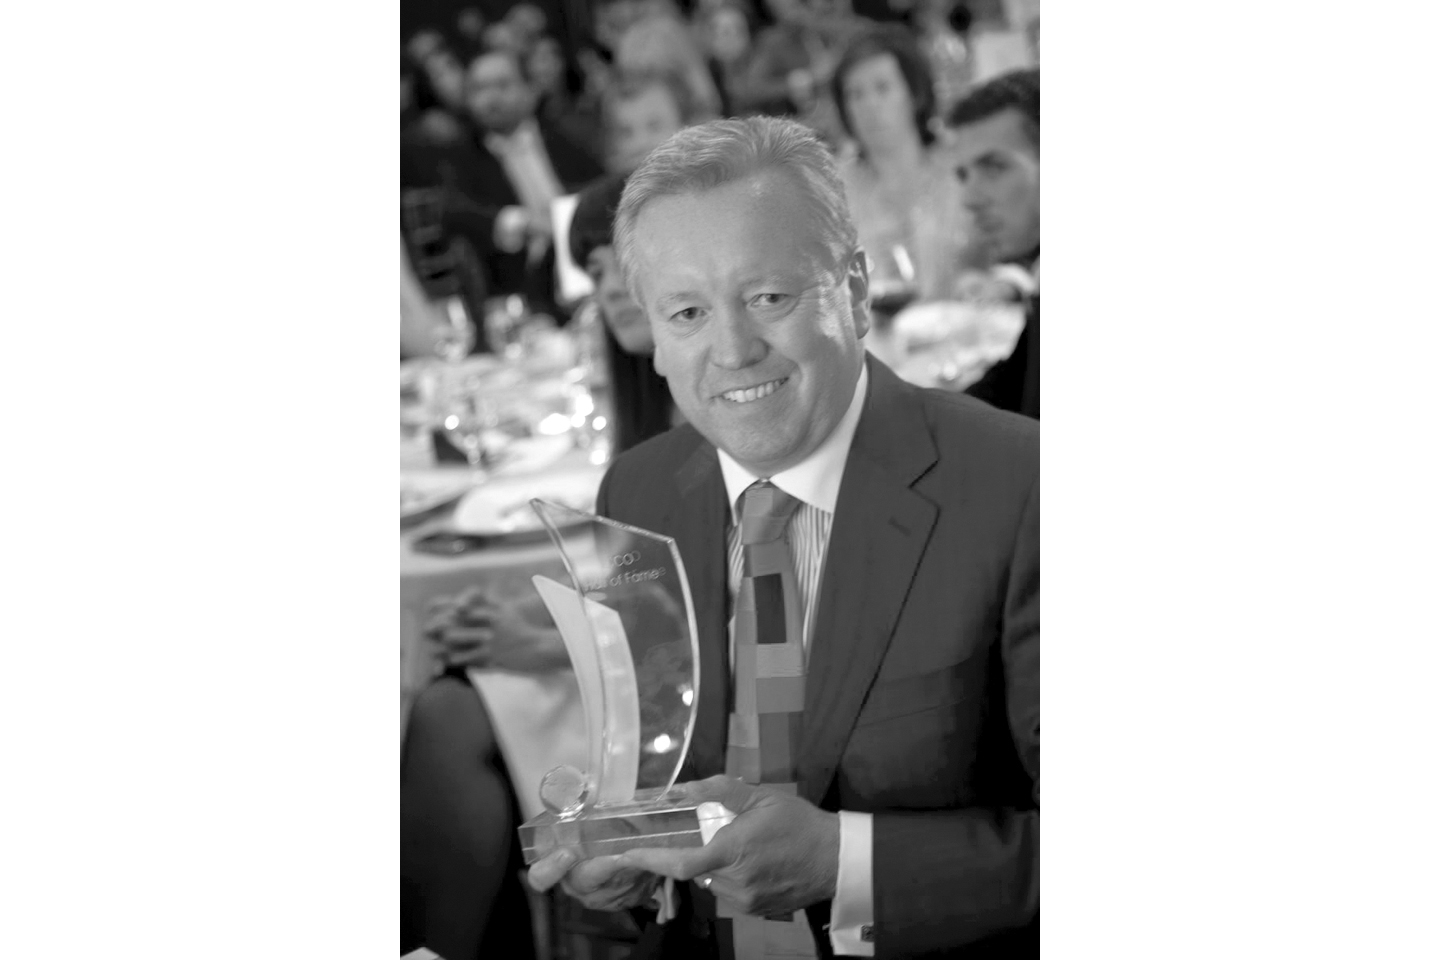 John with the ICCO Hall of Fame award. ICCO is the global association for the PR industry.